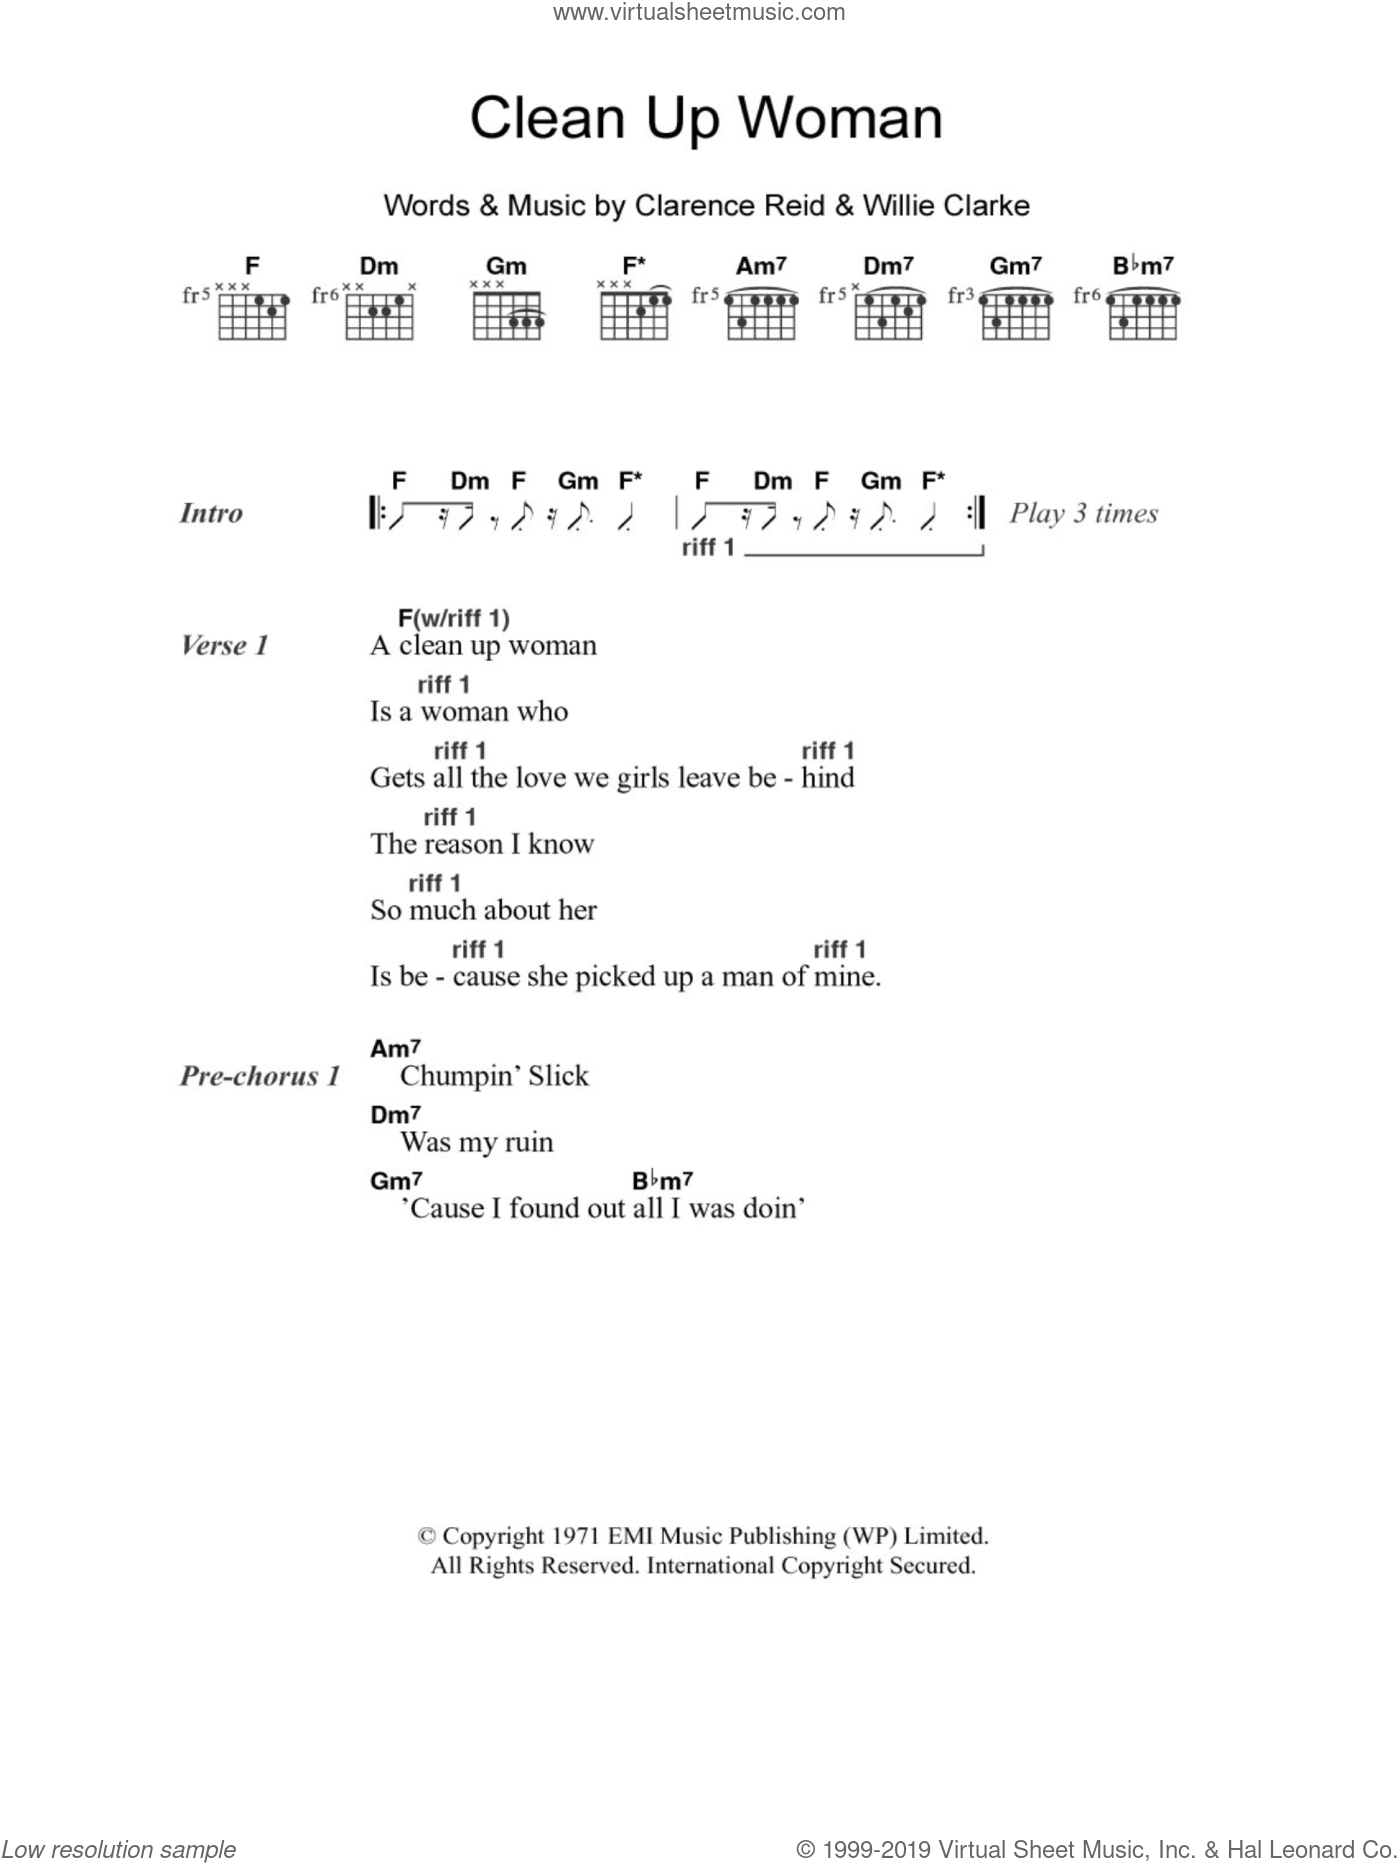 Wright - Clean Up Woman sheet music for guitar (chords) [PDF]